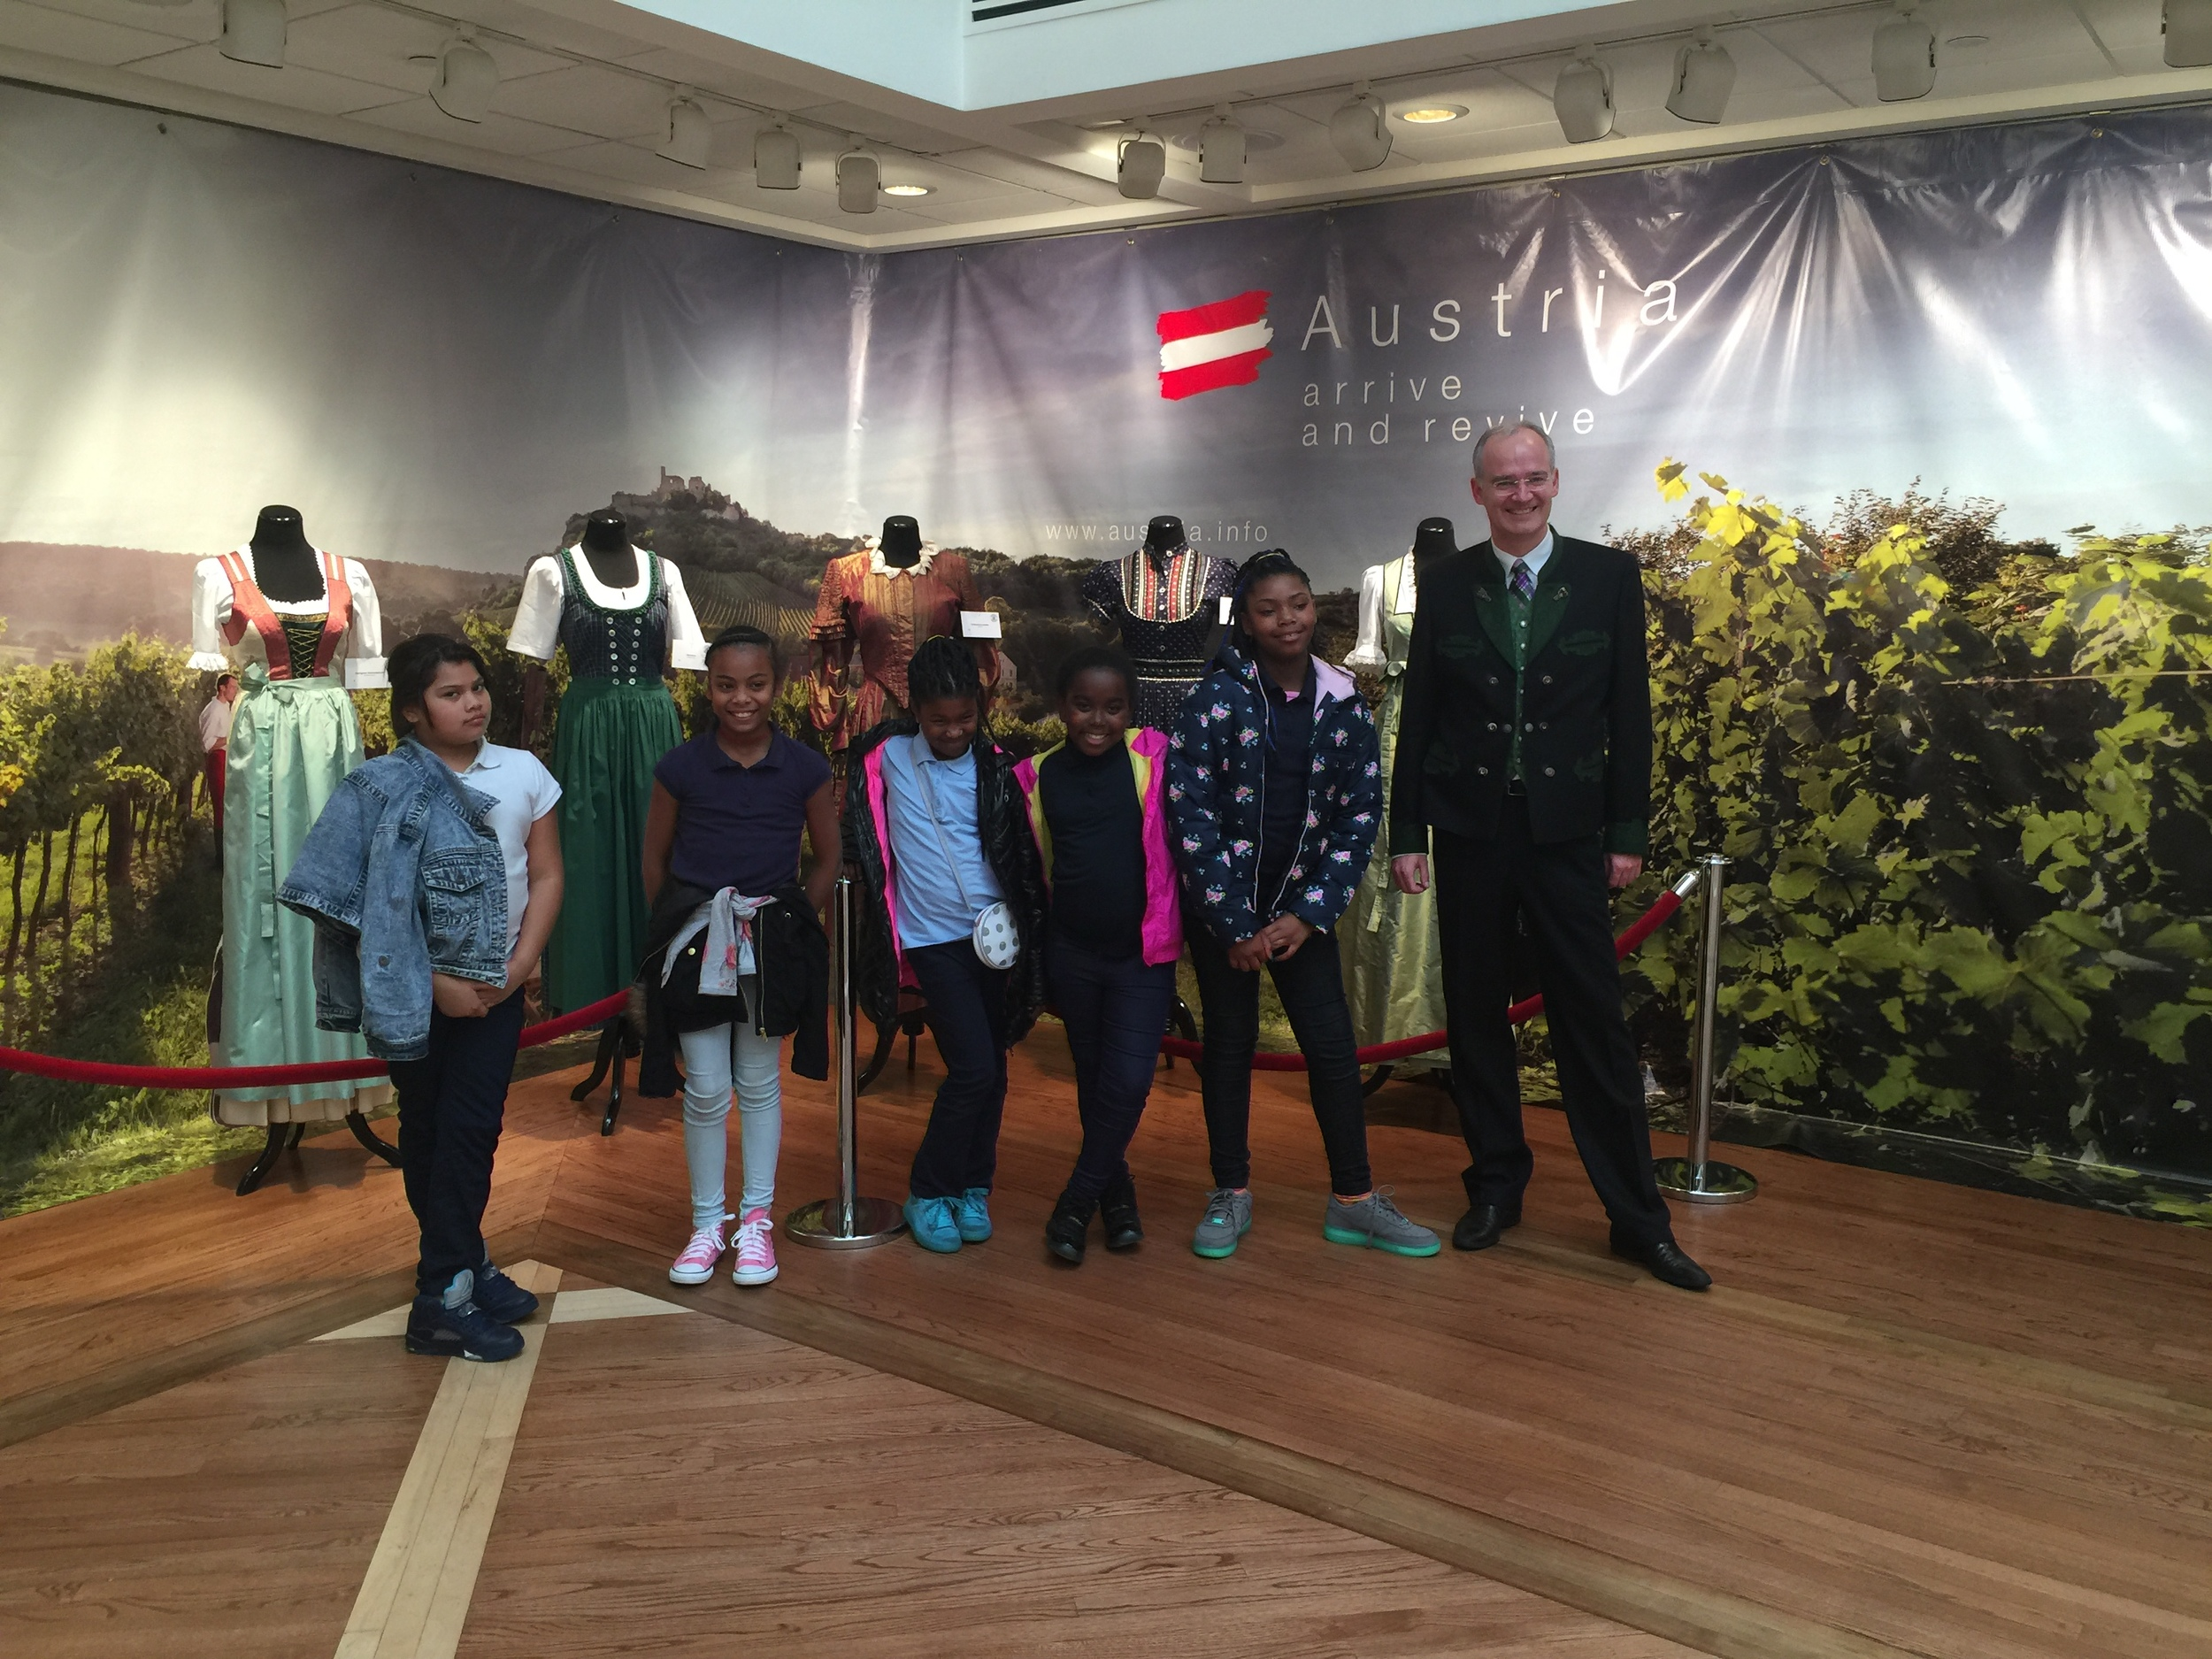 H.D. Cooke Elementary School 5th graders with Director of Press and Information Thorsten Eisingerich sporting his own traditional outfit on the occasion.